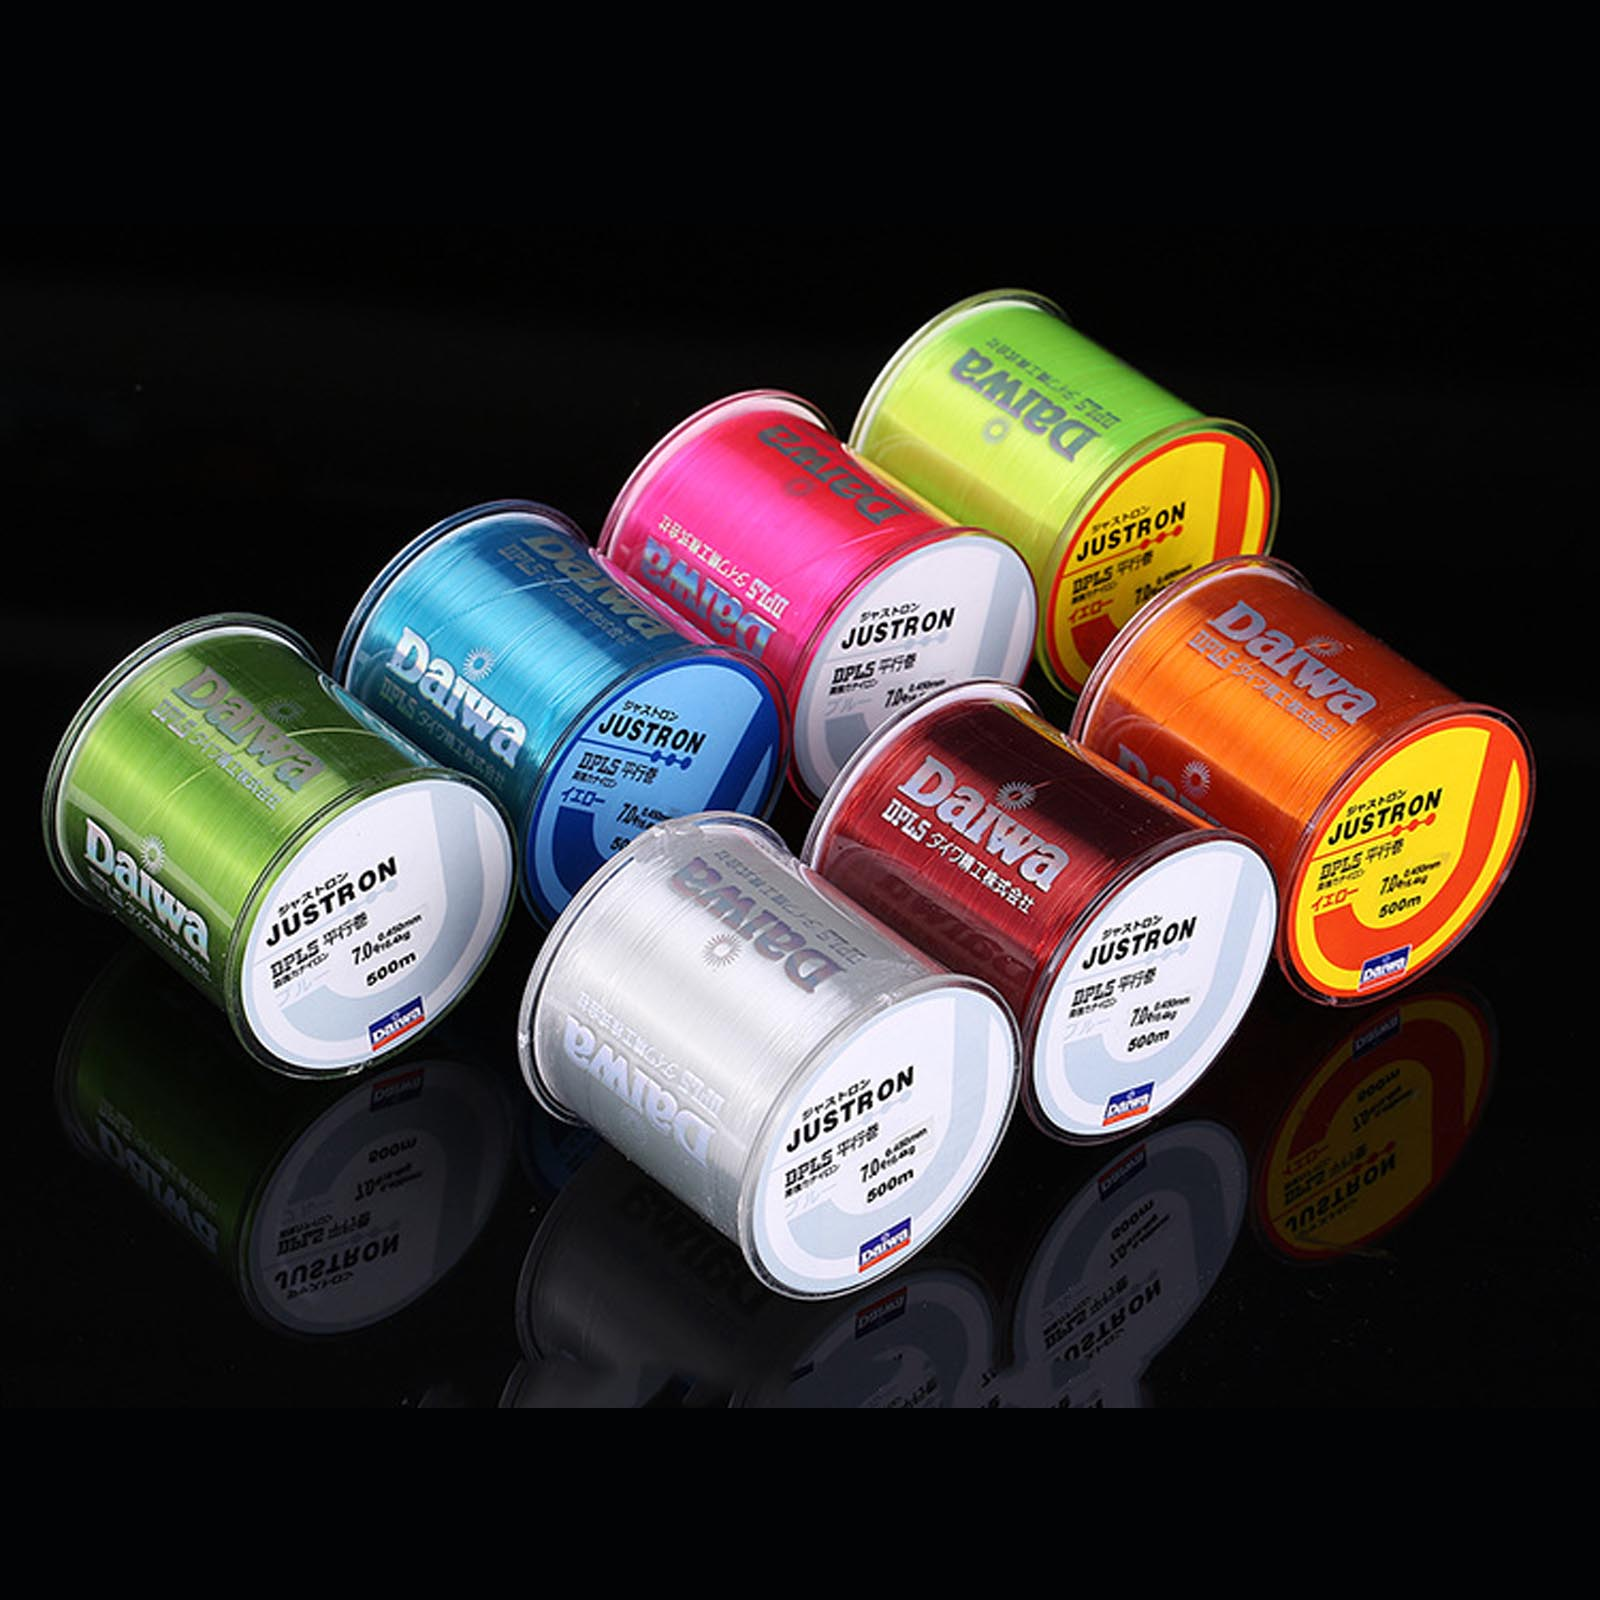 100M 500M Nylon Fishing Line Super Strong Monofilament Quality Japanese Material Saltwater Carp Fishing(China)